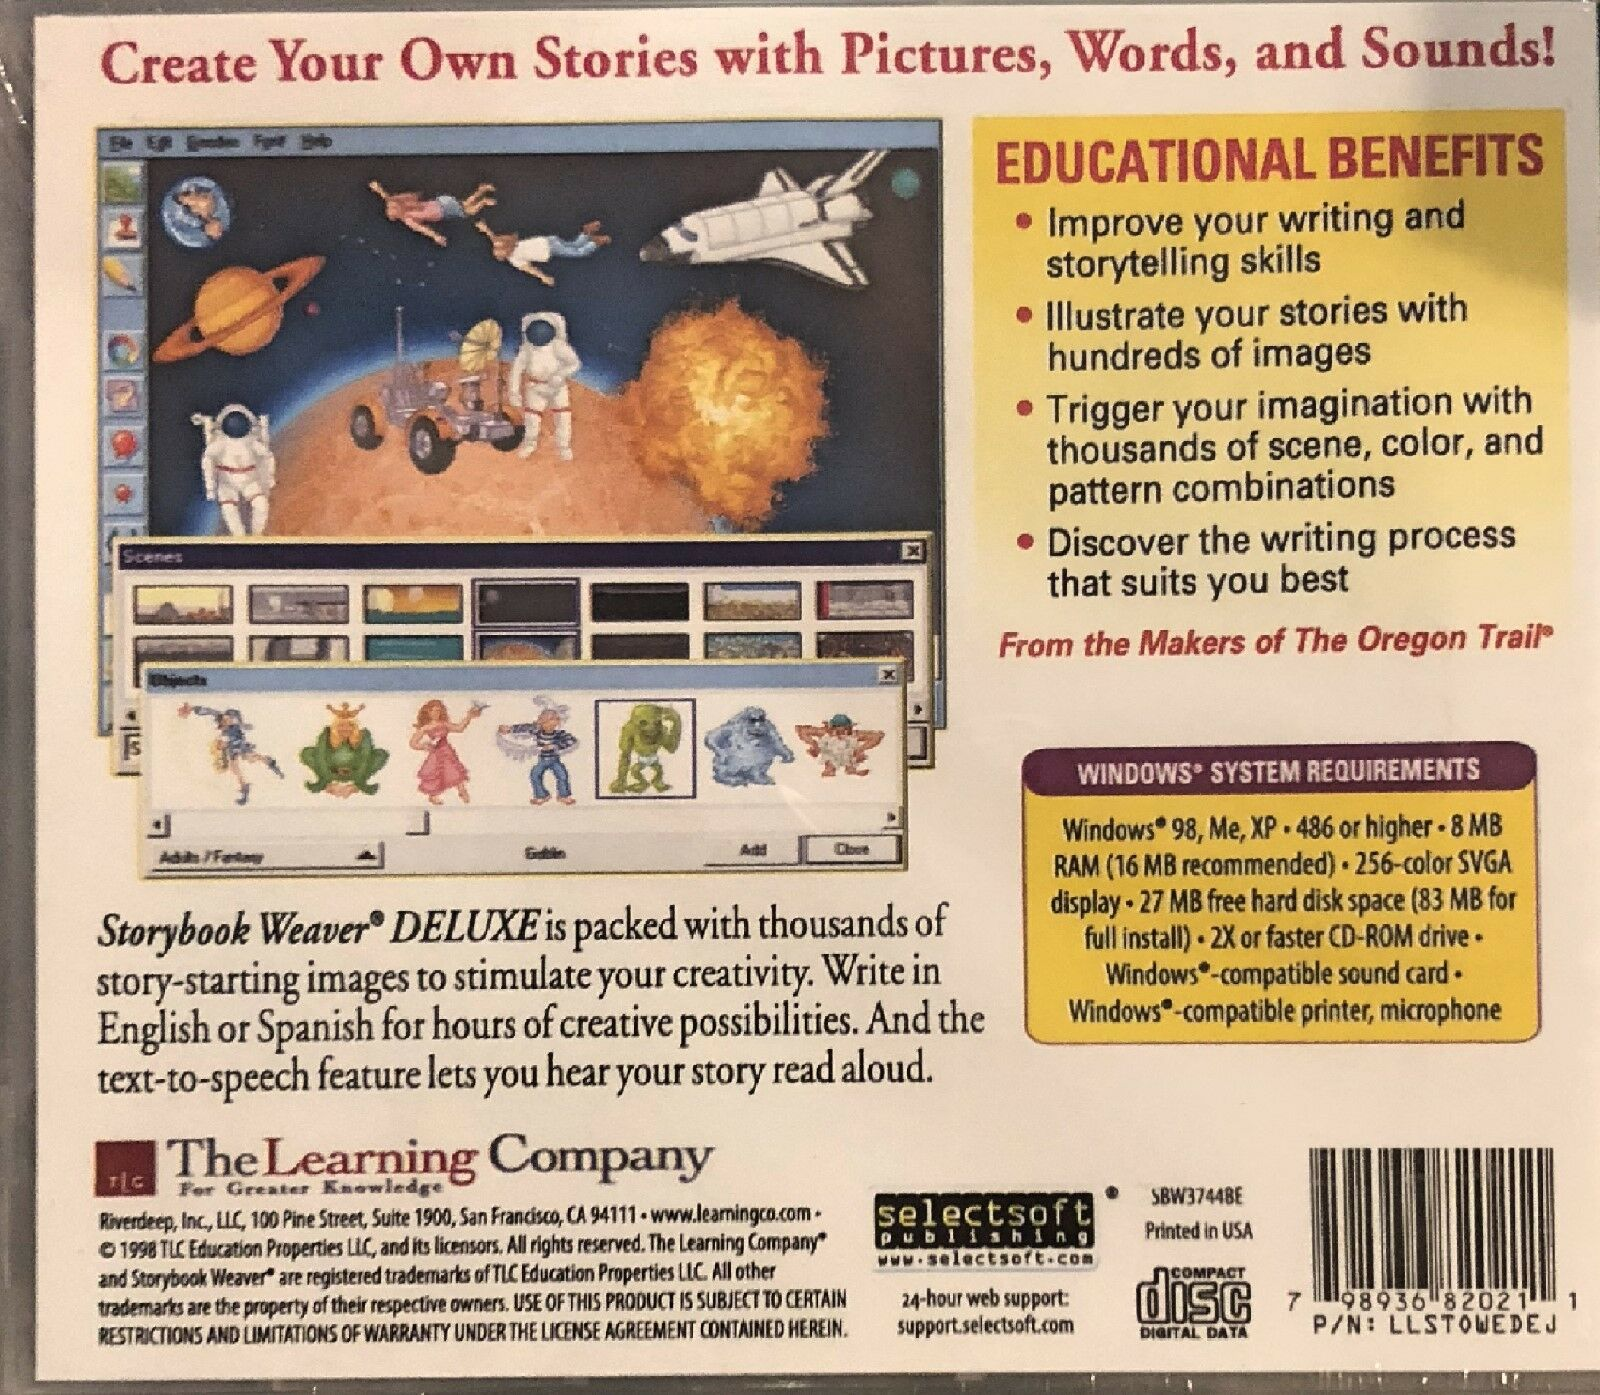 Storybook Weaver Deluxe (Mac and Windows)